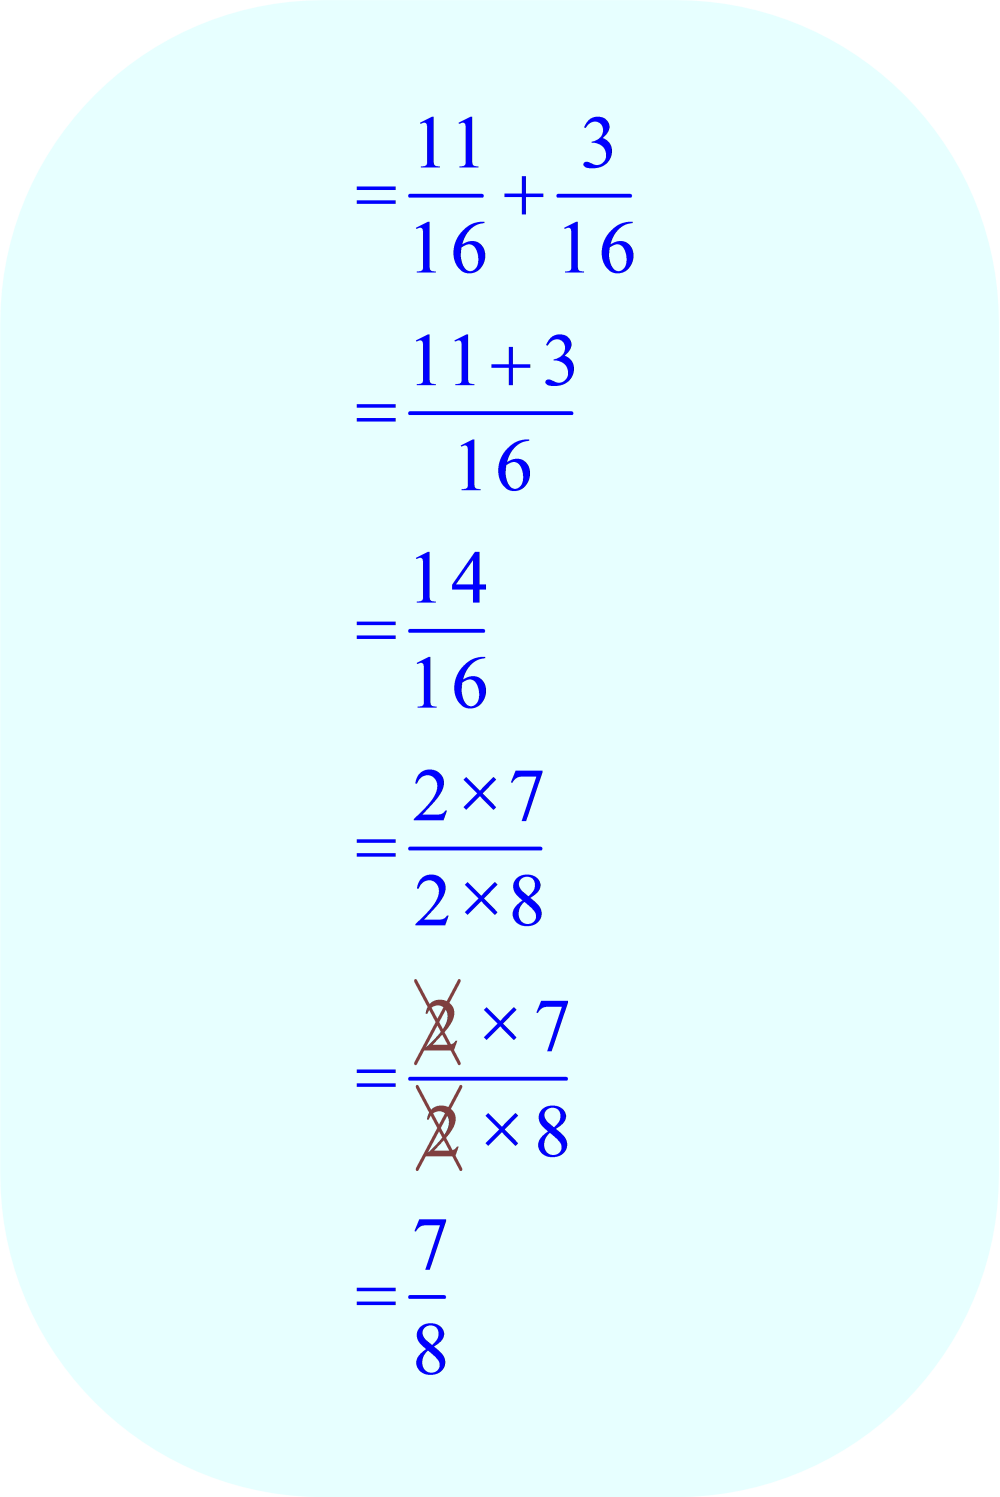 add fractions:  11/16 + 3/16